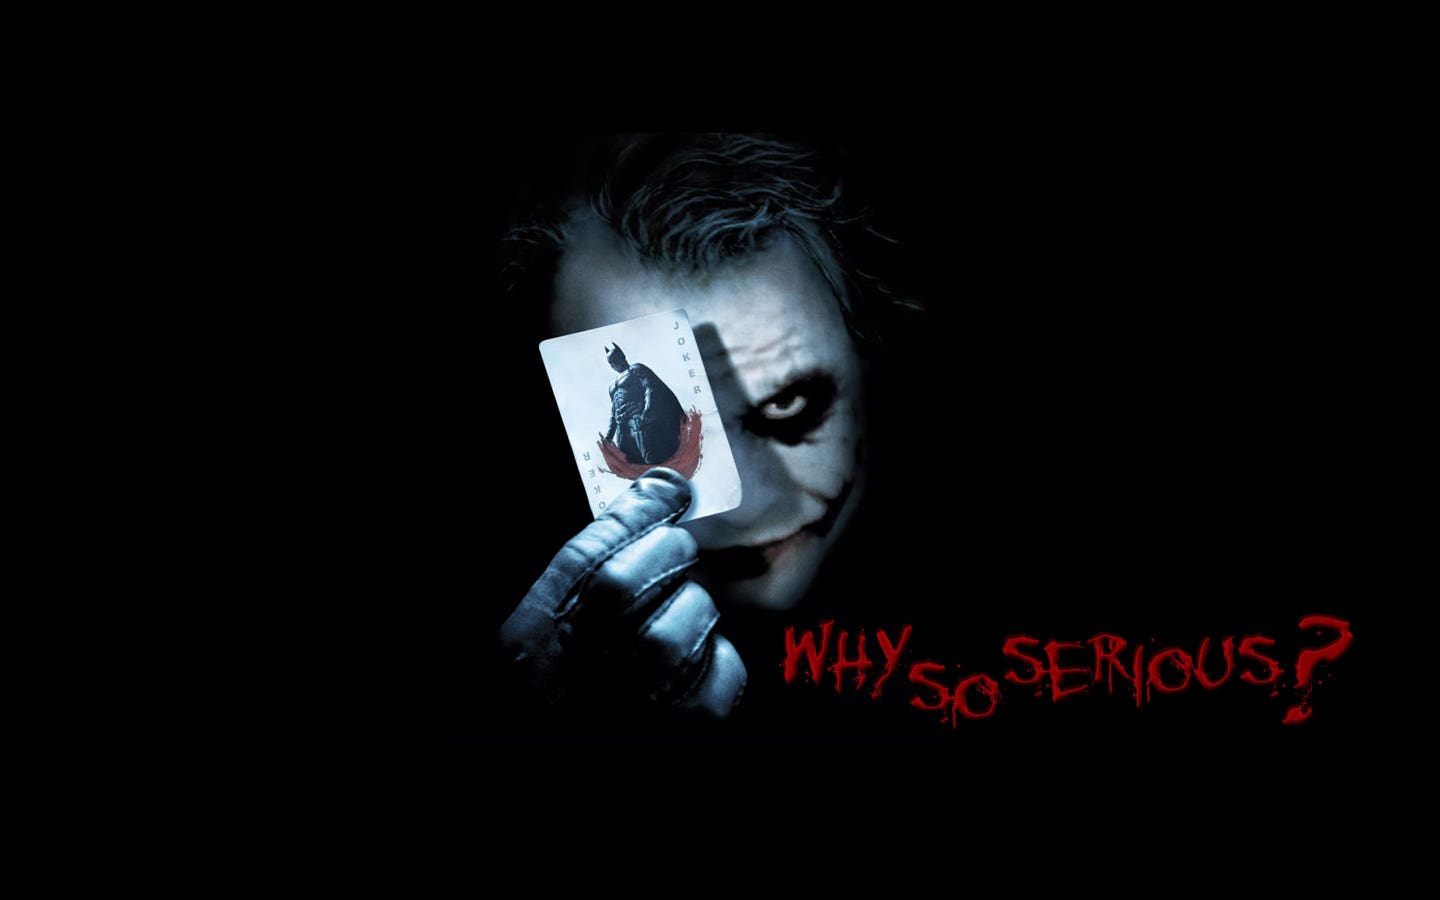 why_so_serious___by_beep_a_zoid.jpg